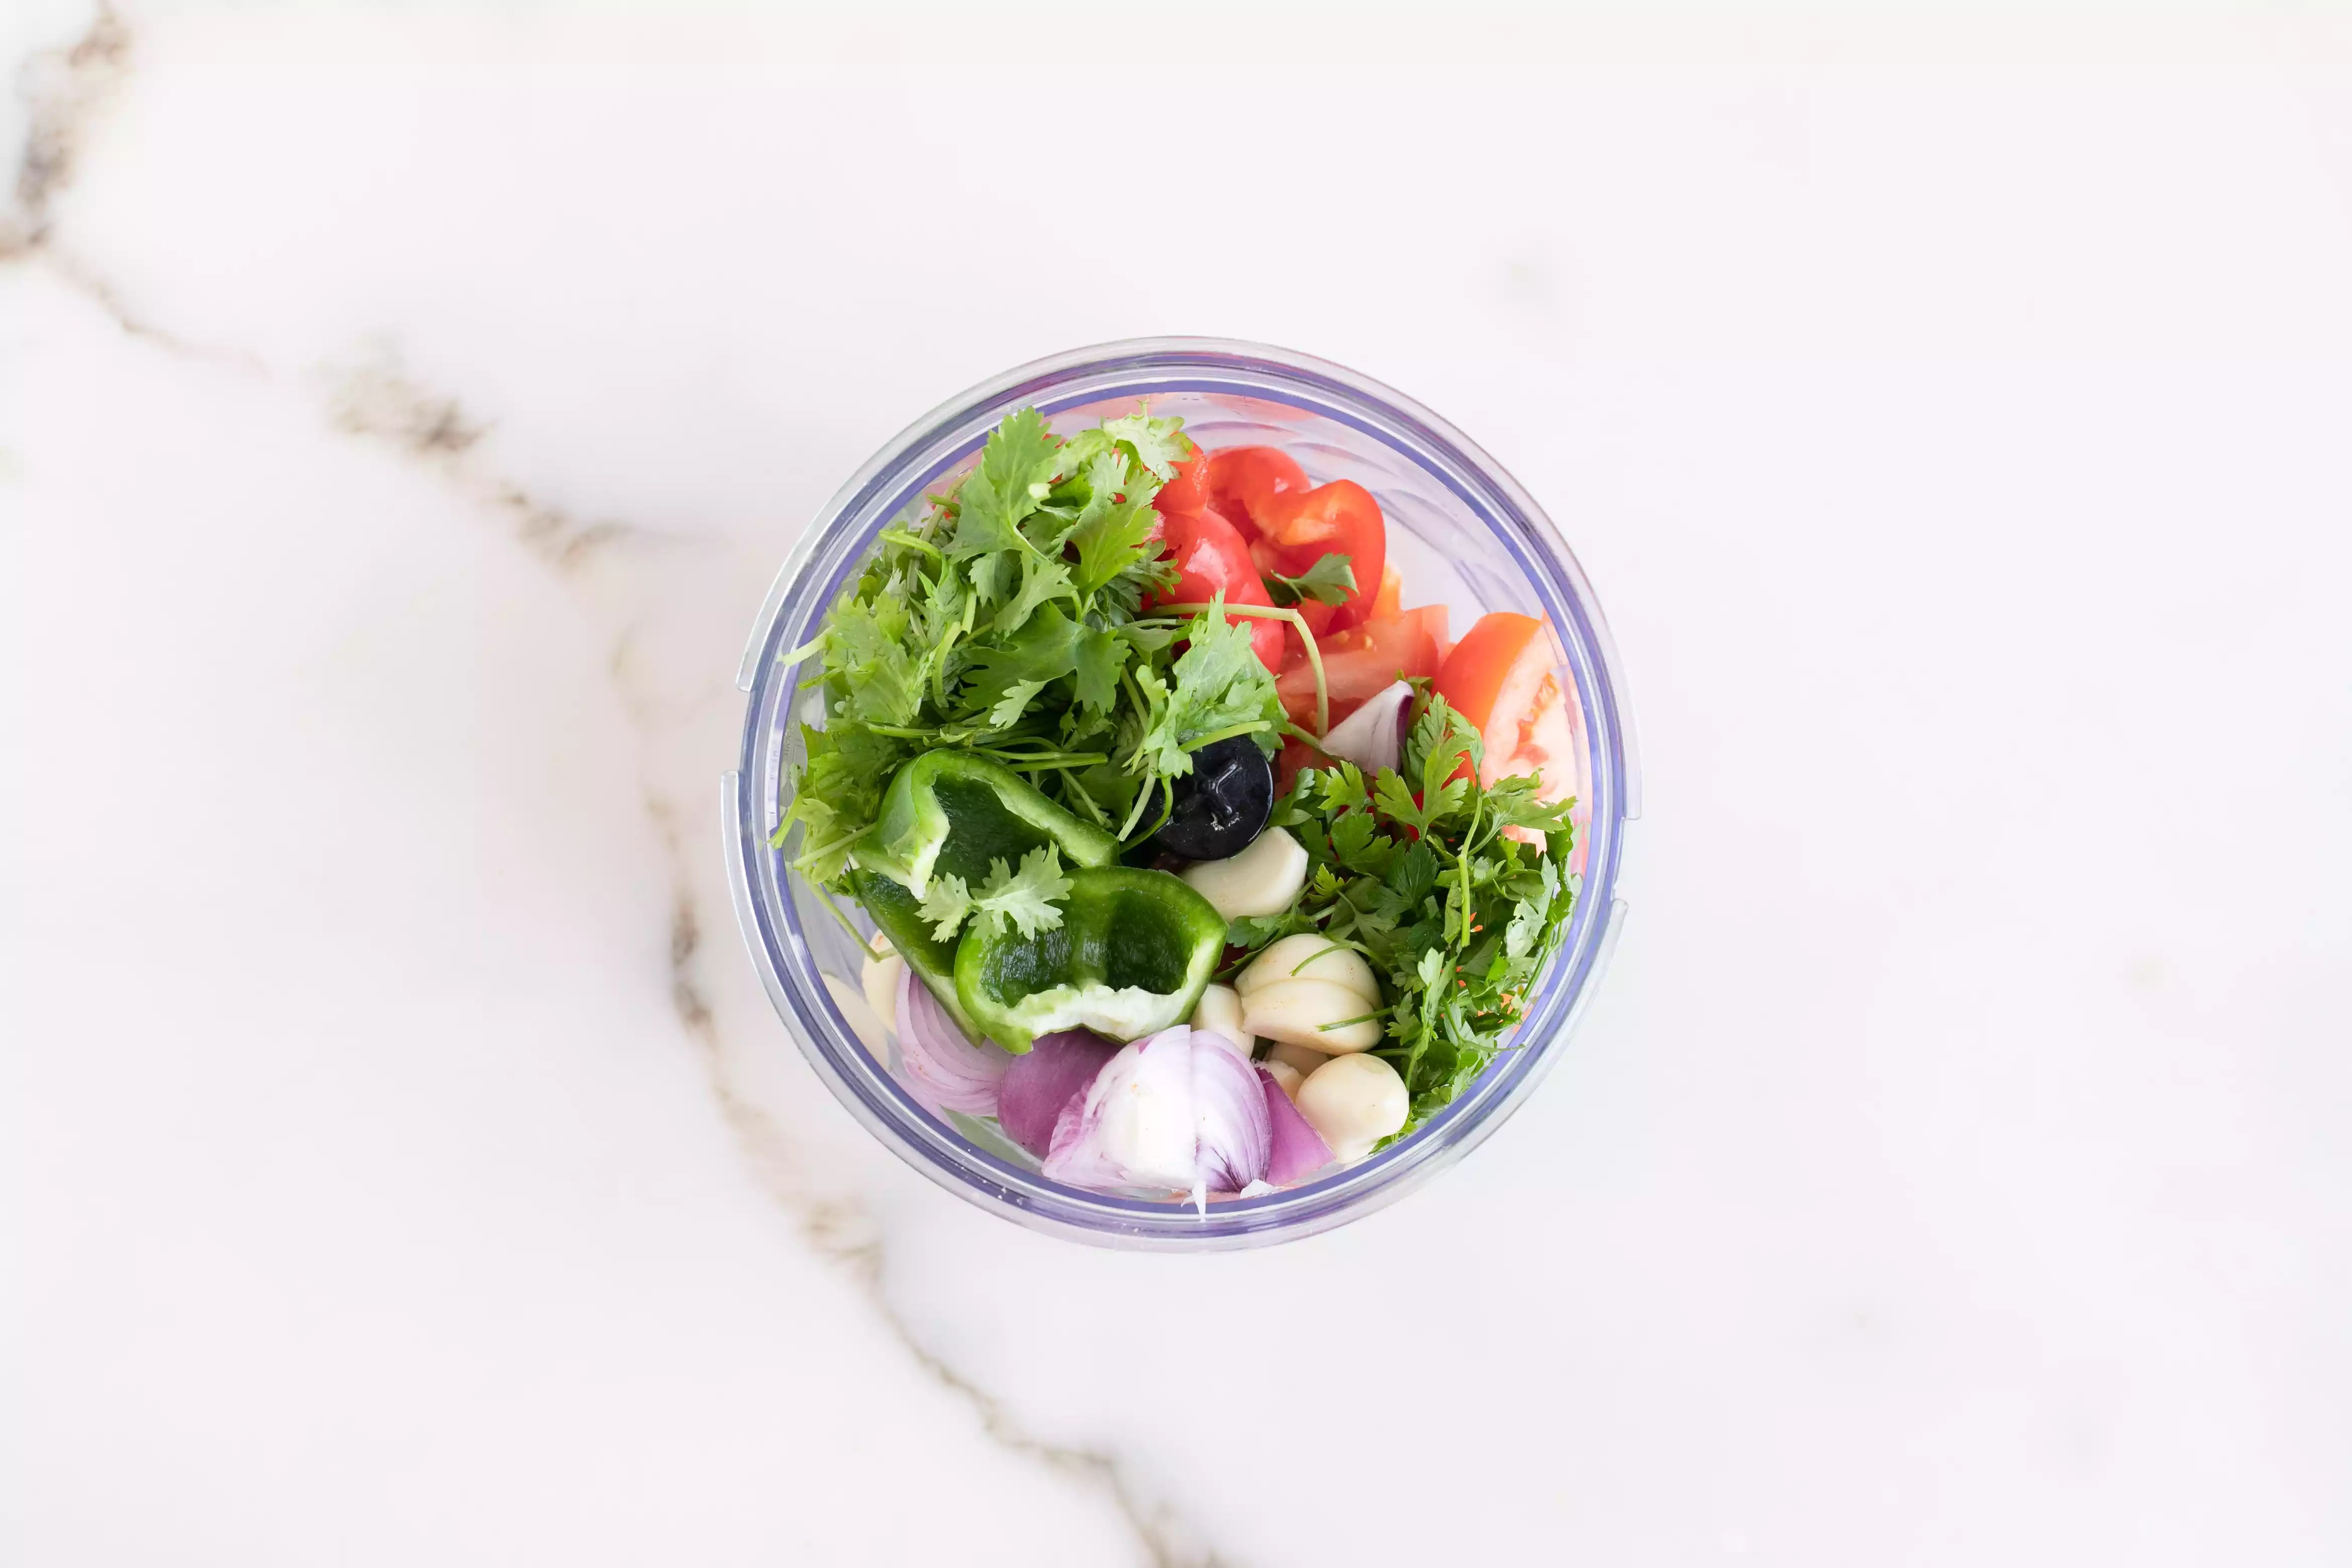 Put chopped ingredients into a blender